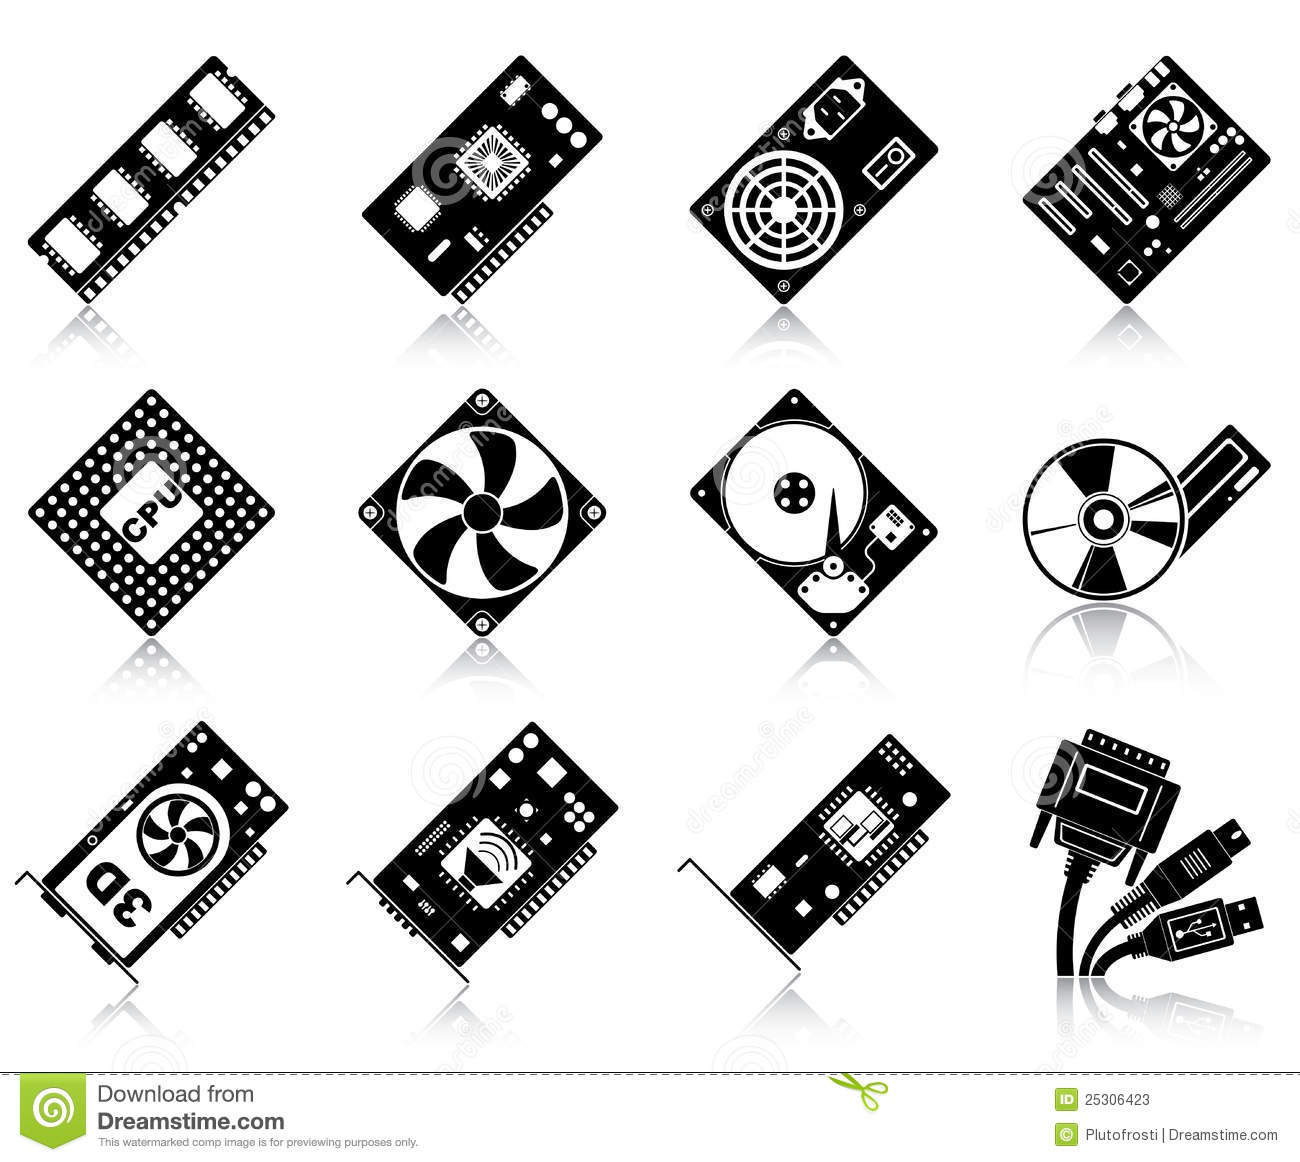 Computer Hardware Icons Royalty Free Stock Photography.